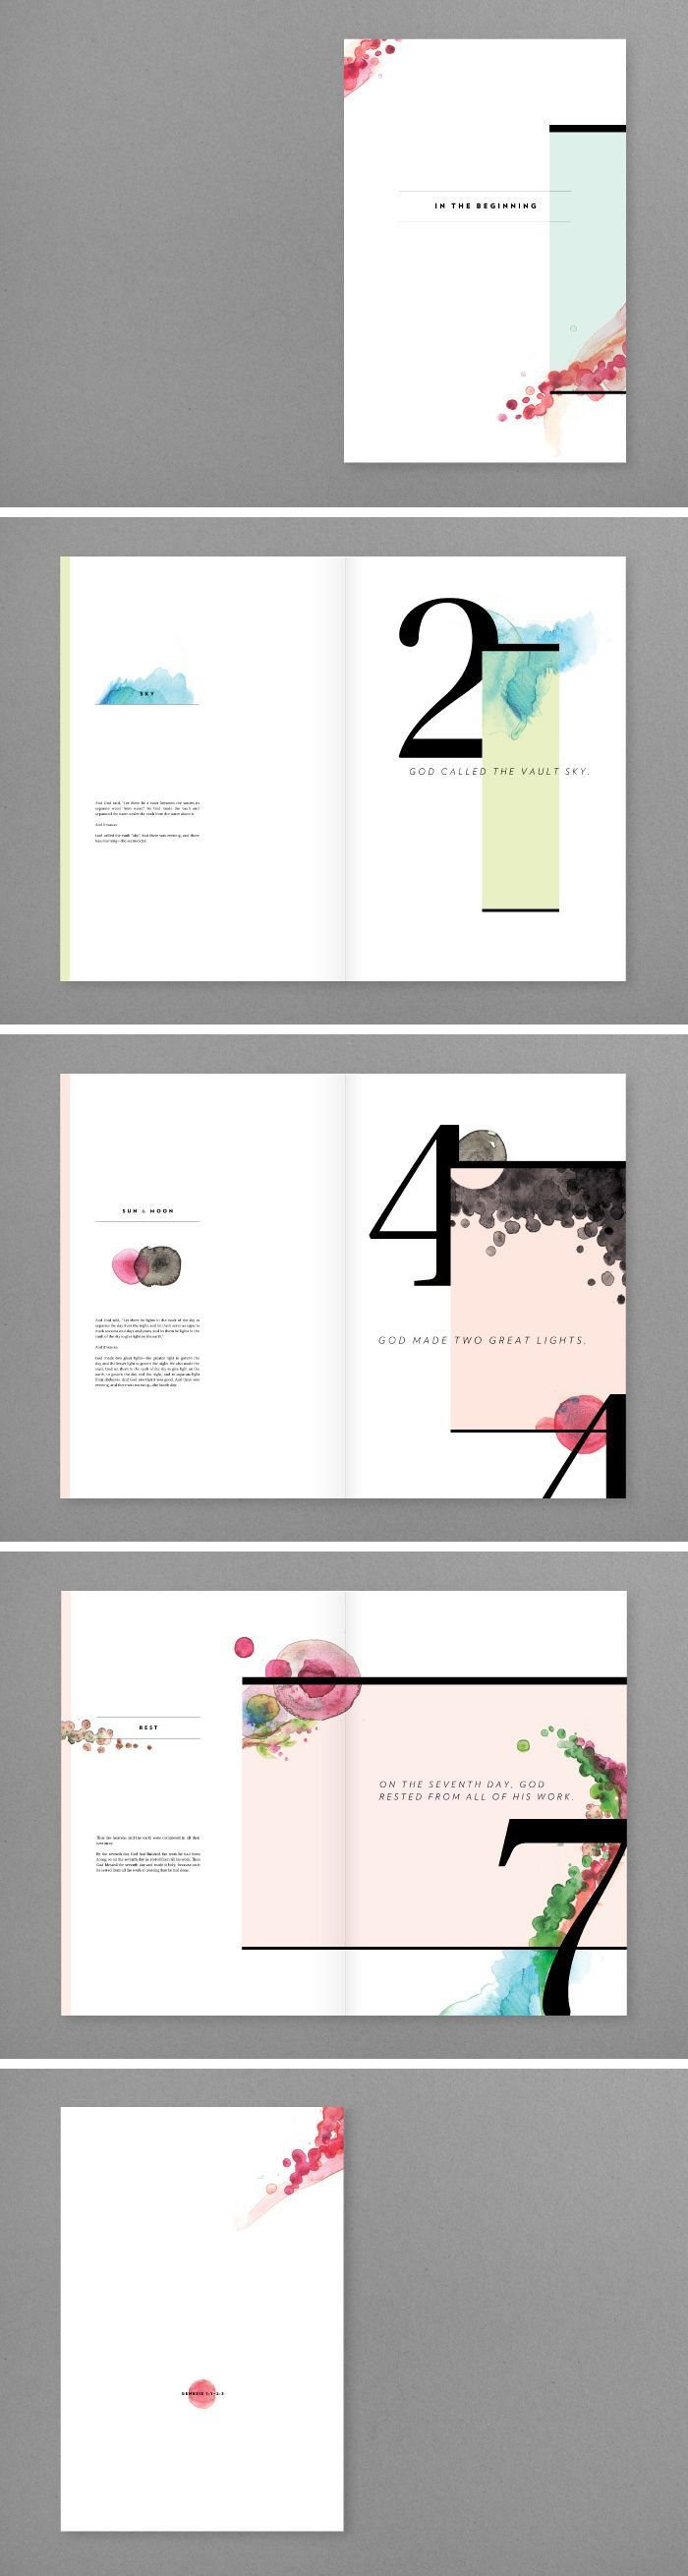 Combination of water color and typography - Editorial / print / layout / book design / graphic